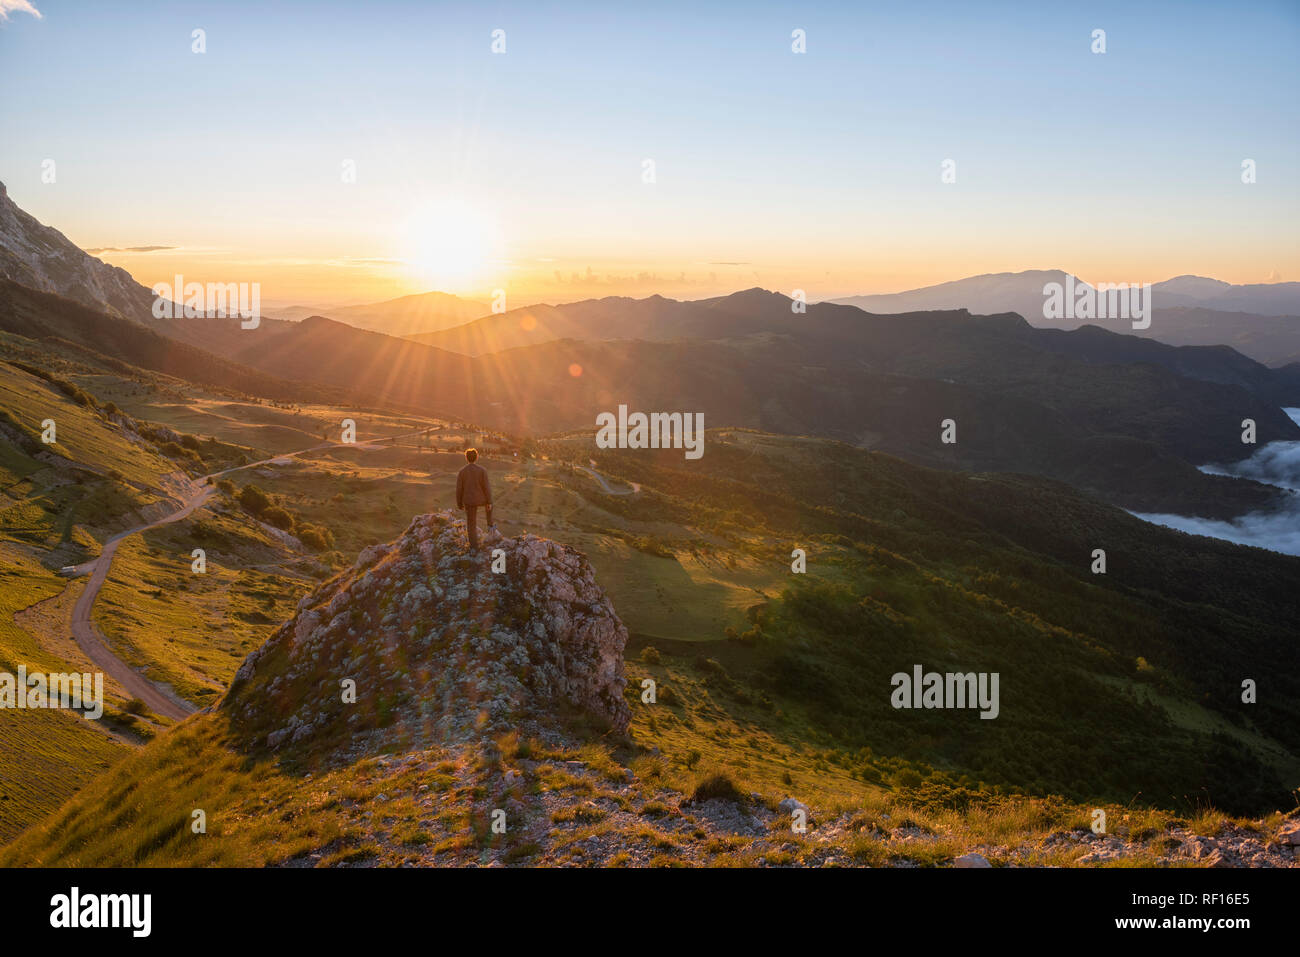 Italy, Umbria, Sibillini National Park, hiker standing on viewpoint at sunrise - Stock Image